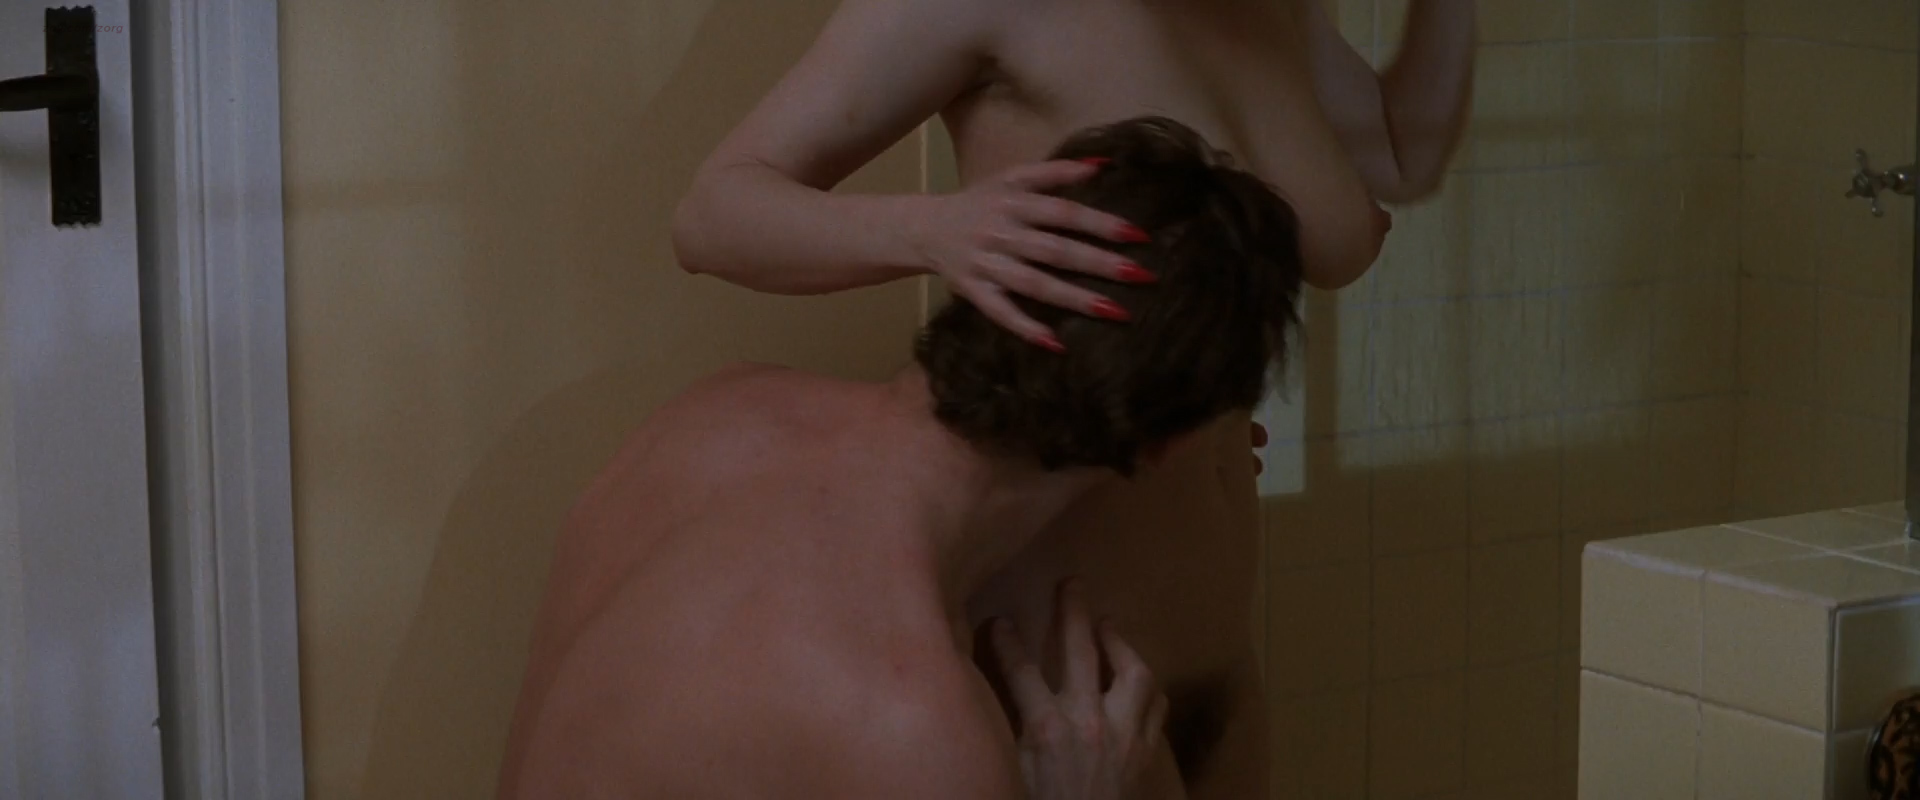 from Andy laura san giacomo nude in movie